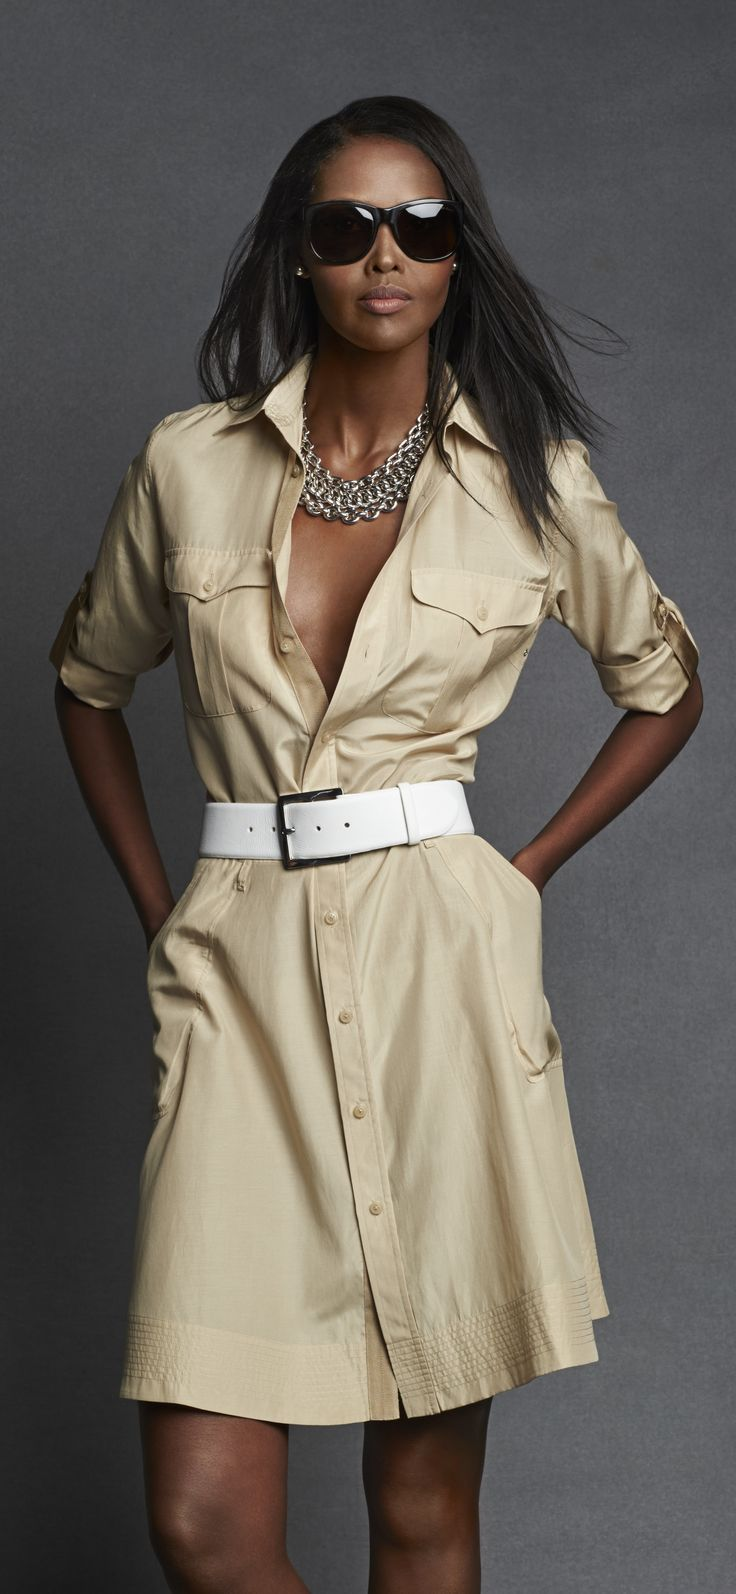 ^Ralph Lauren Black Label Safari Shirt Dress: Crafted from a lightweight silk-and-cotton blend